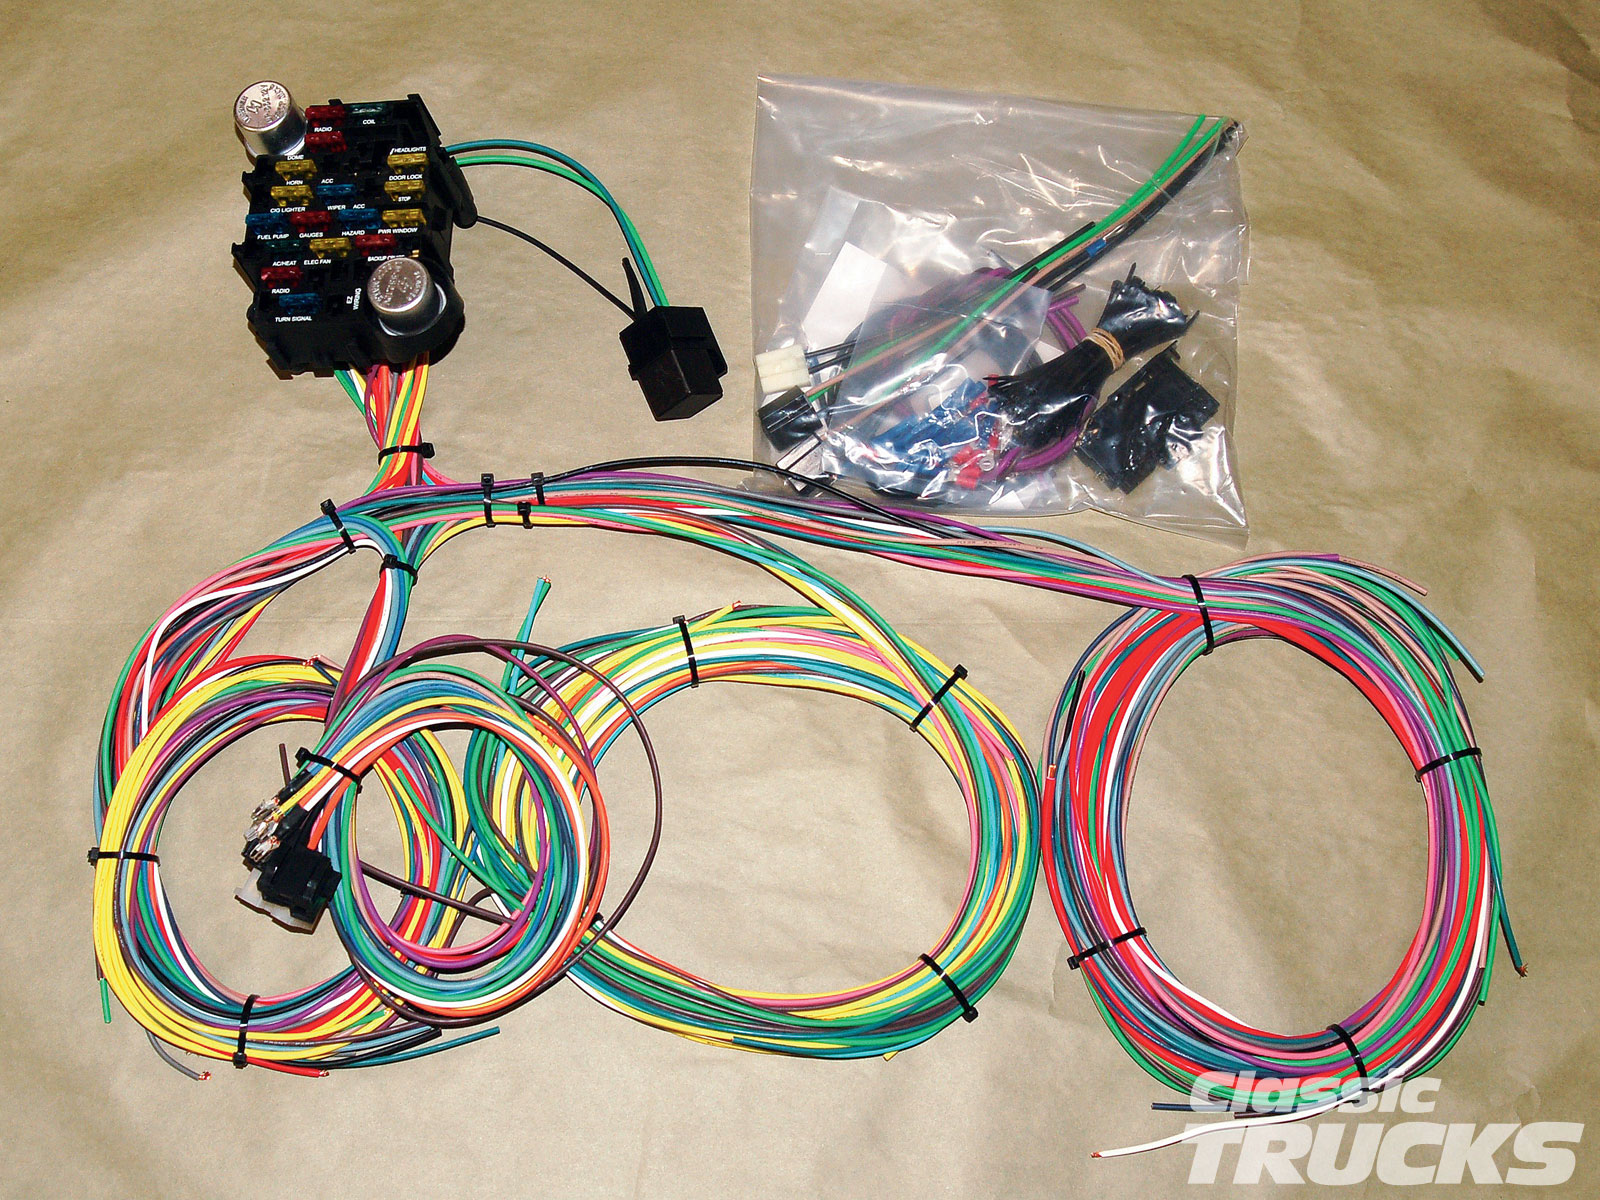 1010clt 02 o aftermarket wiring harness install kit?resize\\\=665%2C499 painless wiring harness australia tamahuproject org painless wiring harness australia at fashall.co